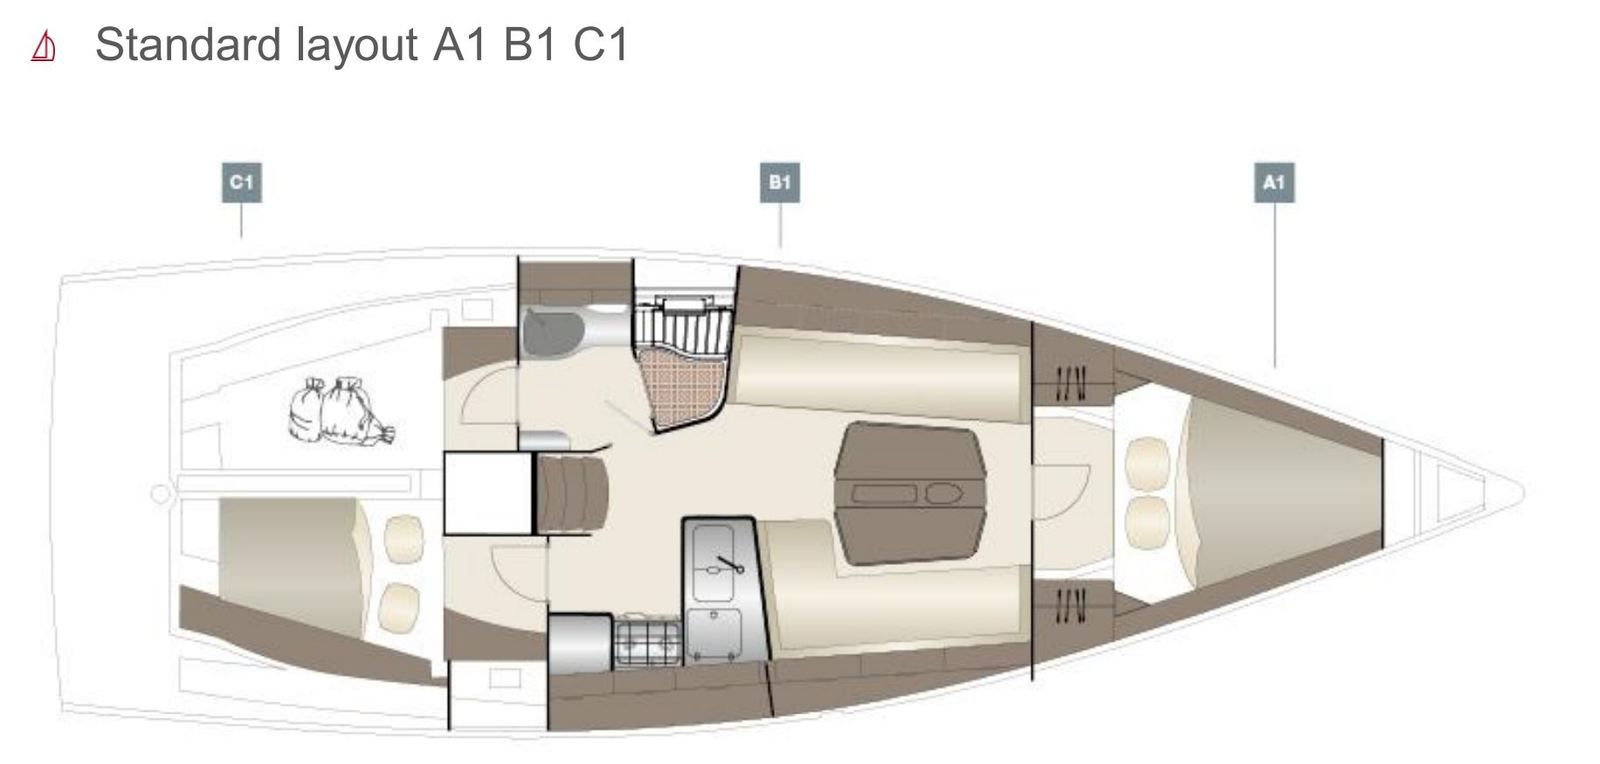 The different layouts of the new Dehler 38 SQ